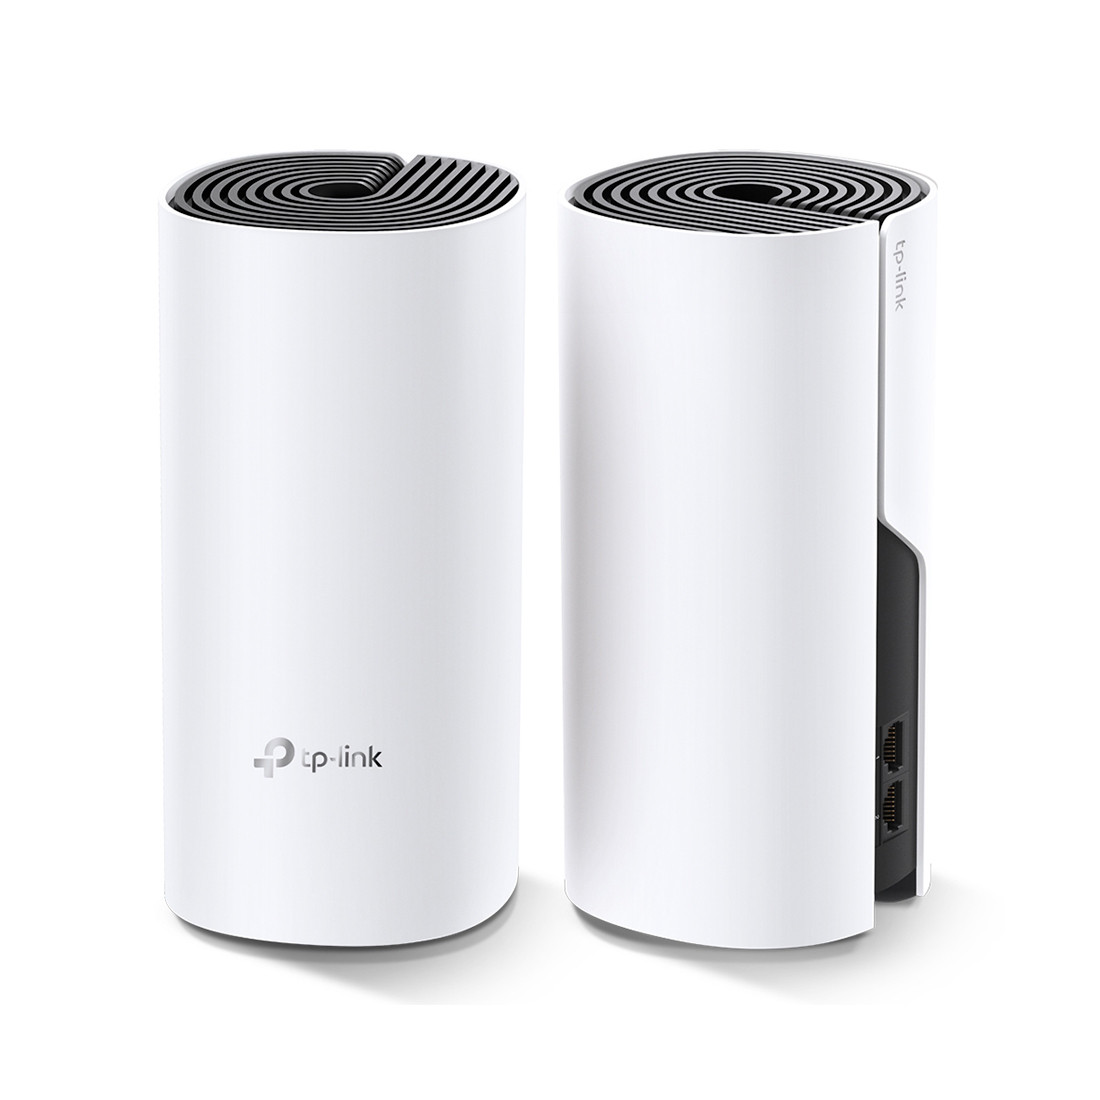 Маршрутизатор TP-Link Deco M4(2-pack)